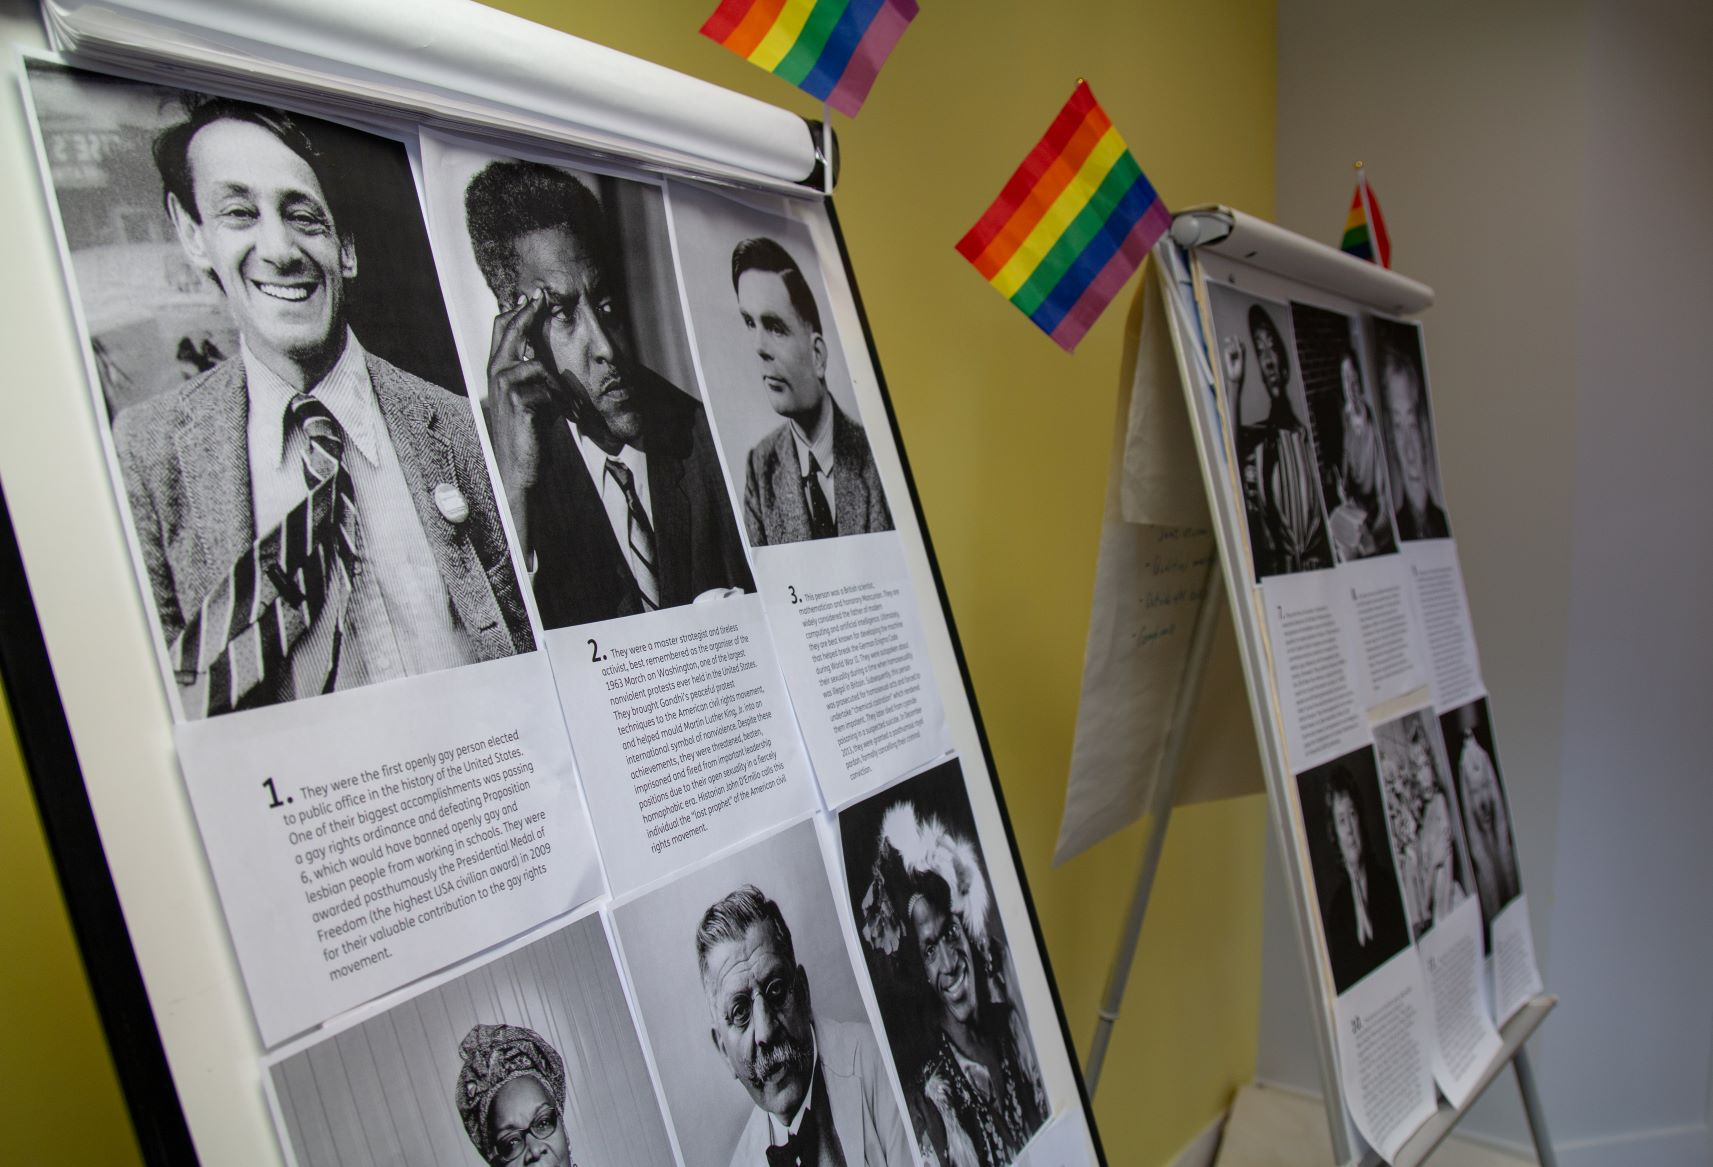 Staff host morning of activities to mark LGBT+ History Month